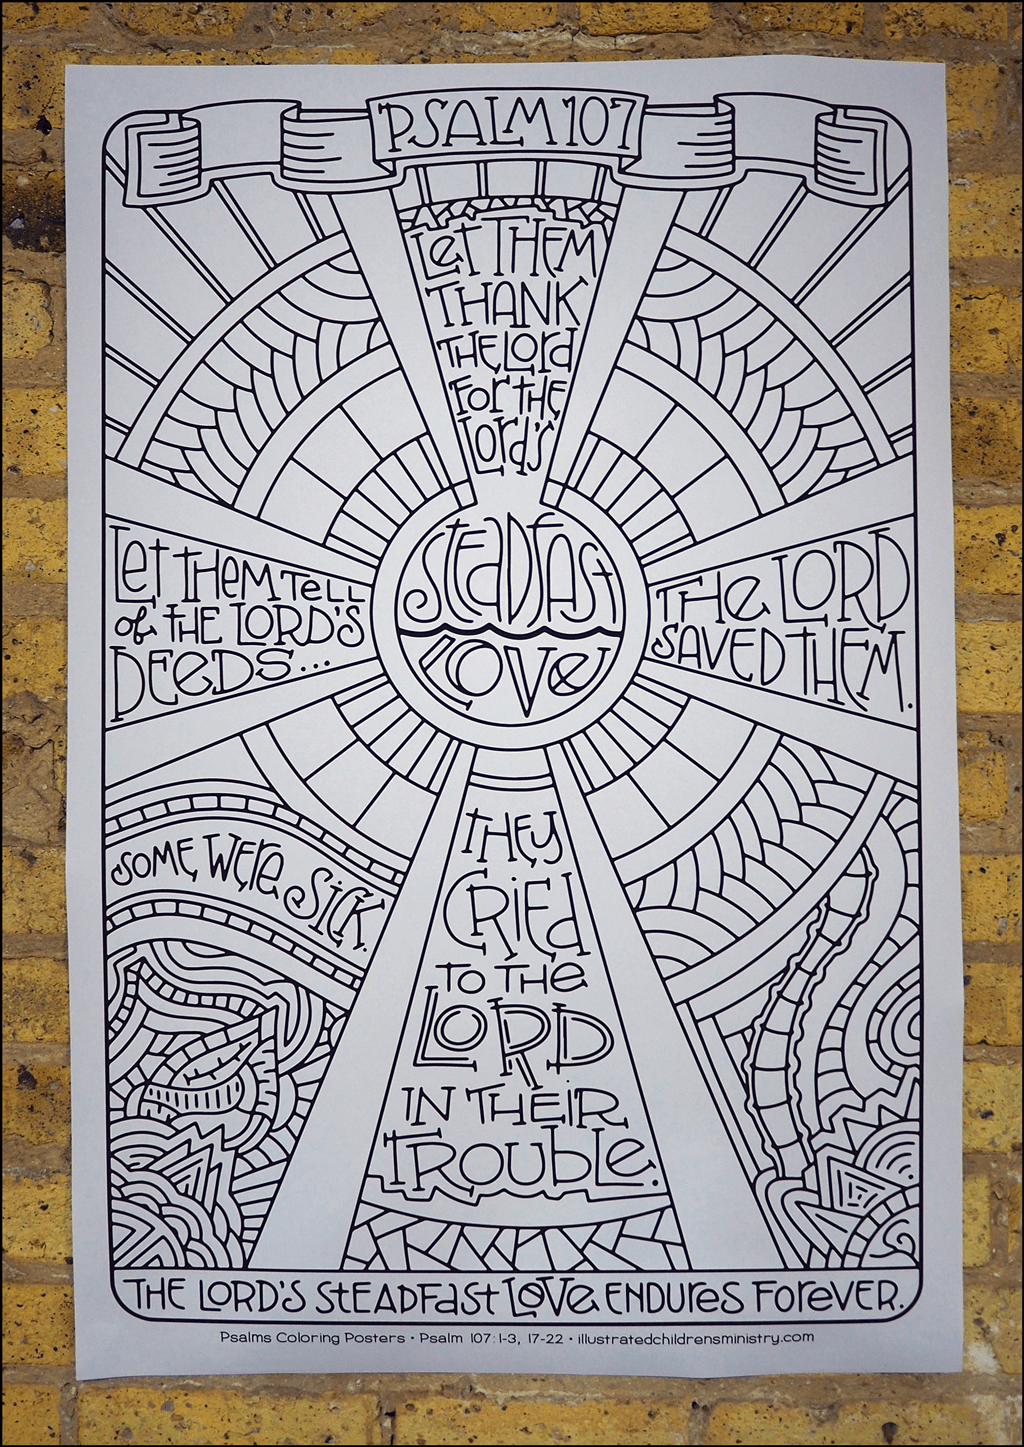 Psalms coloring poster - Steadfast love